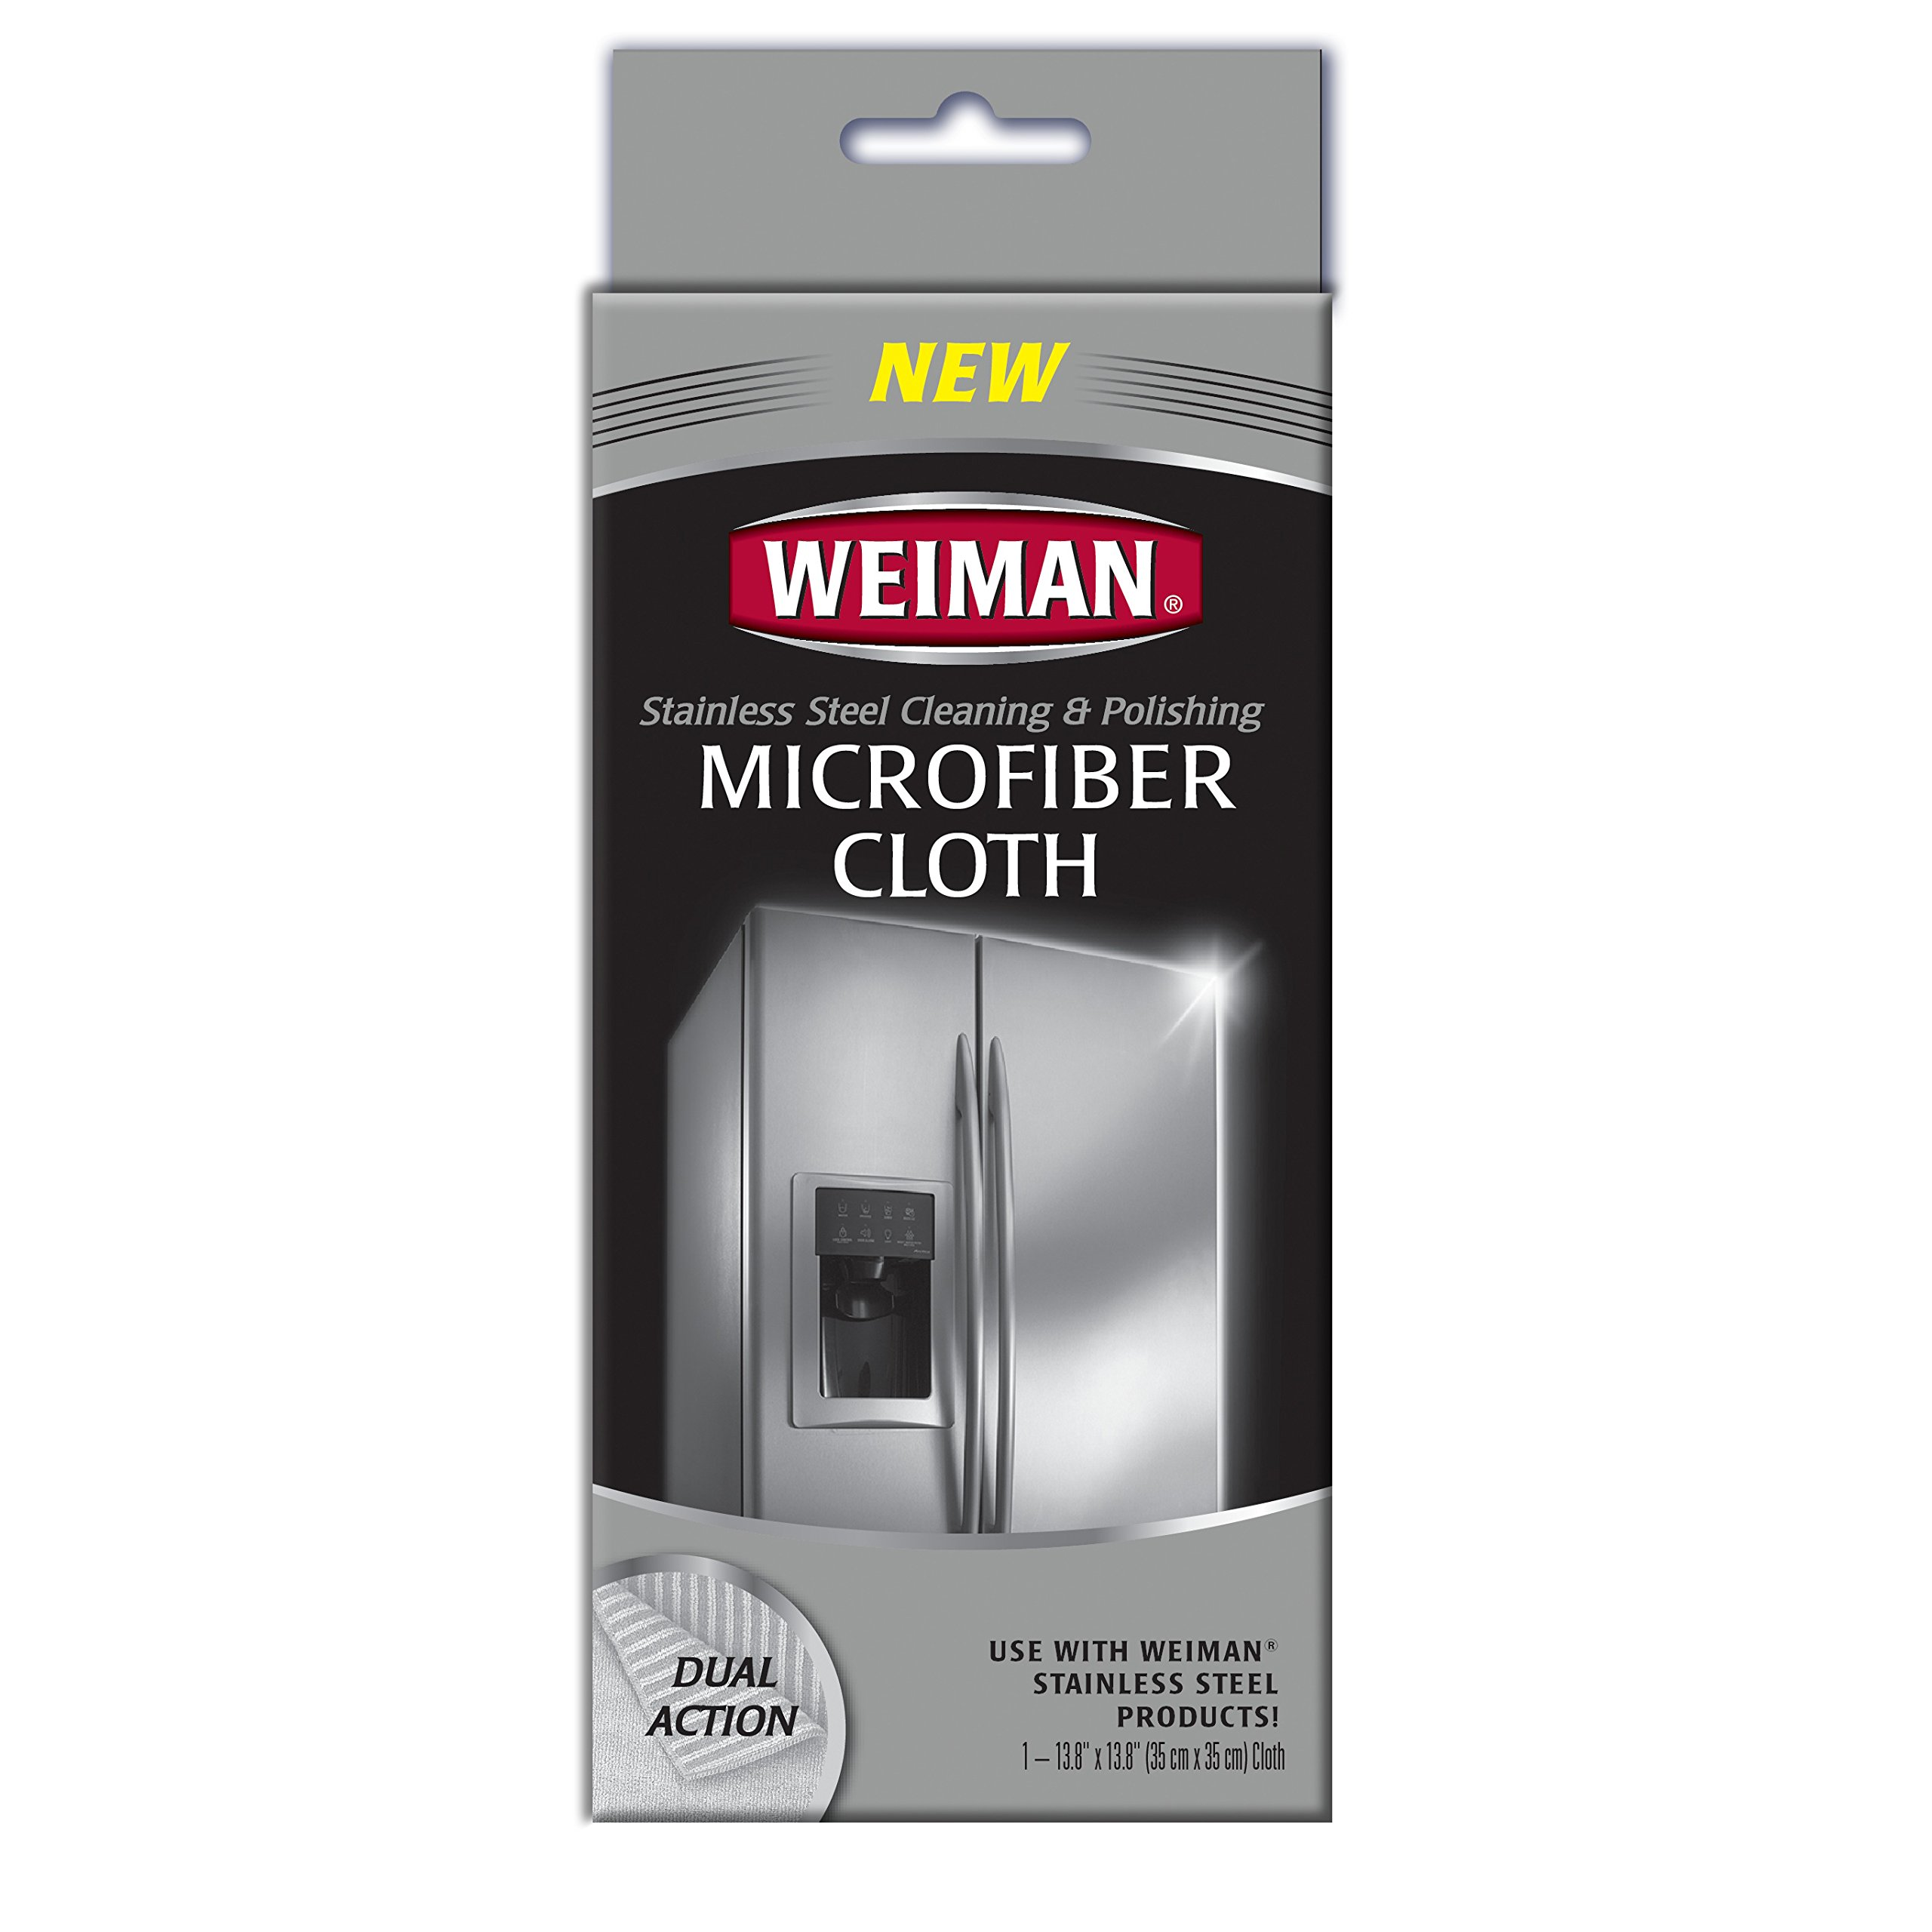 Weiman Microfiber Cloth for Stainless steel